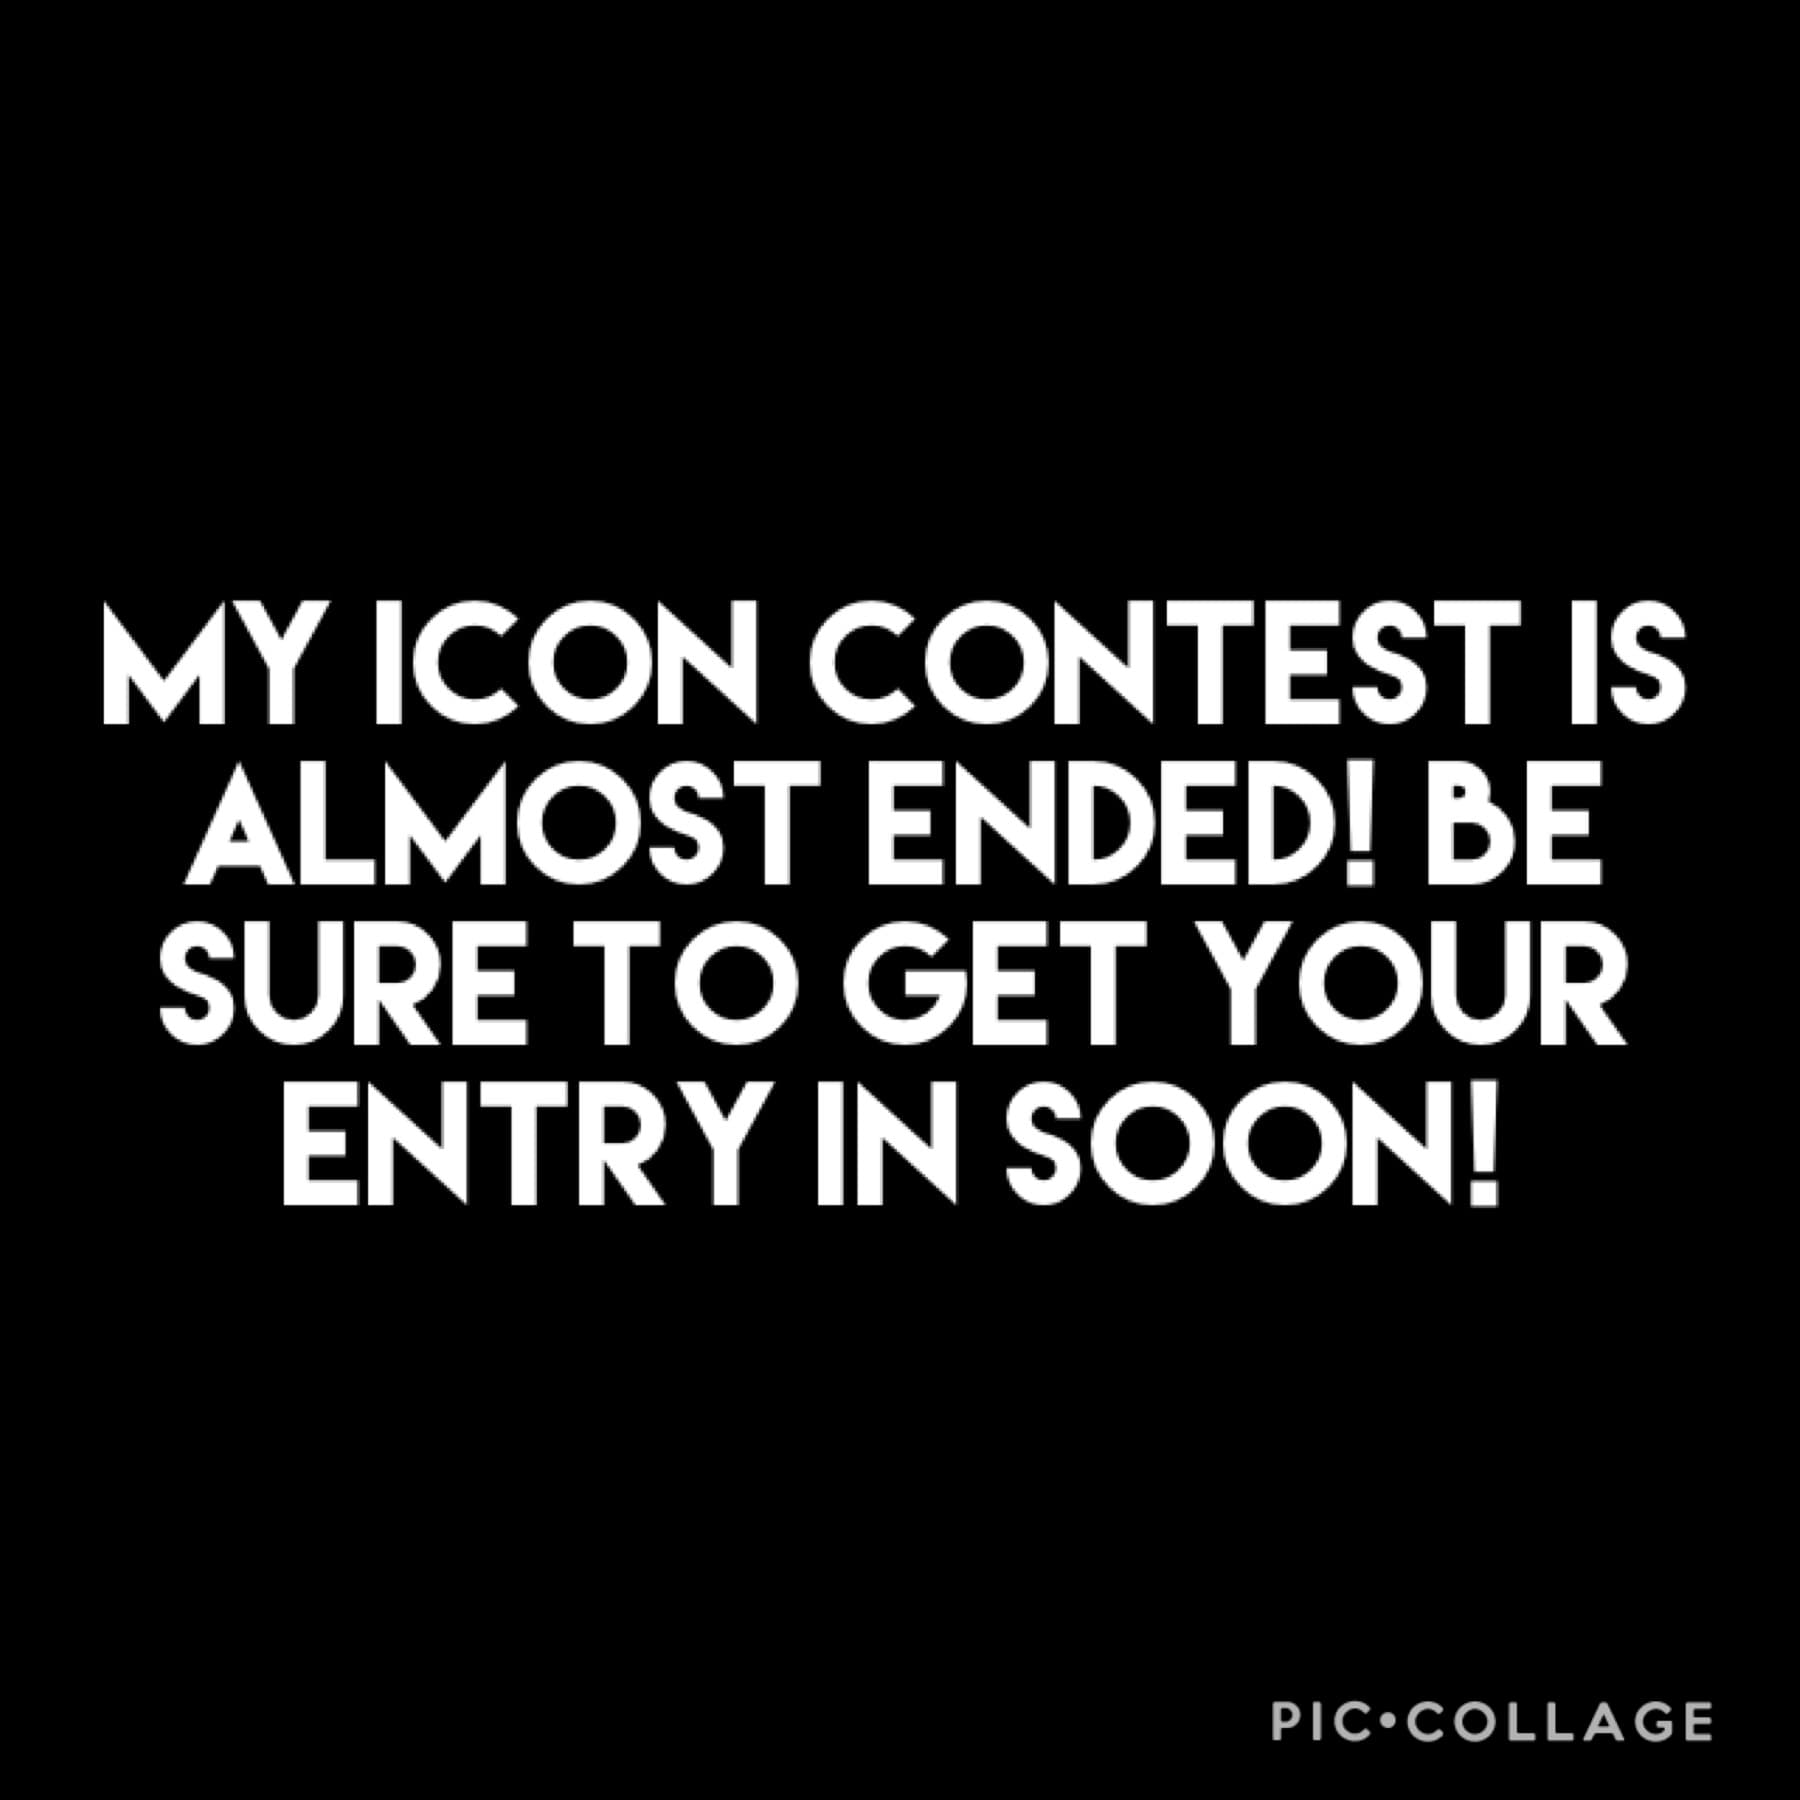 Be sure to enter soon!